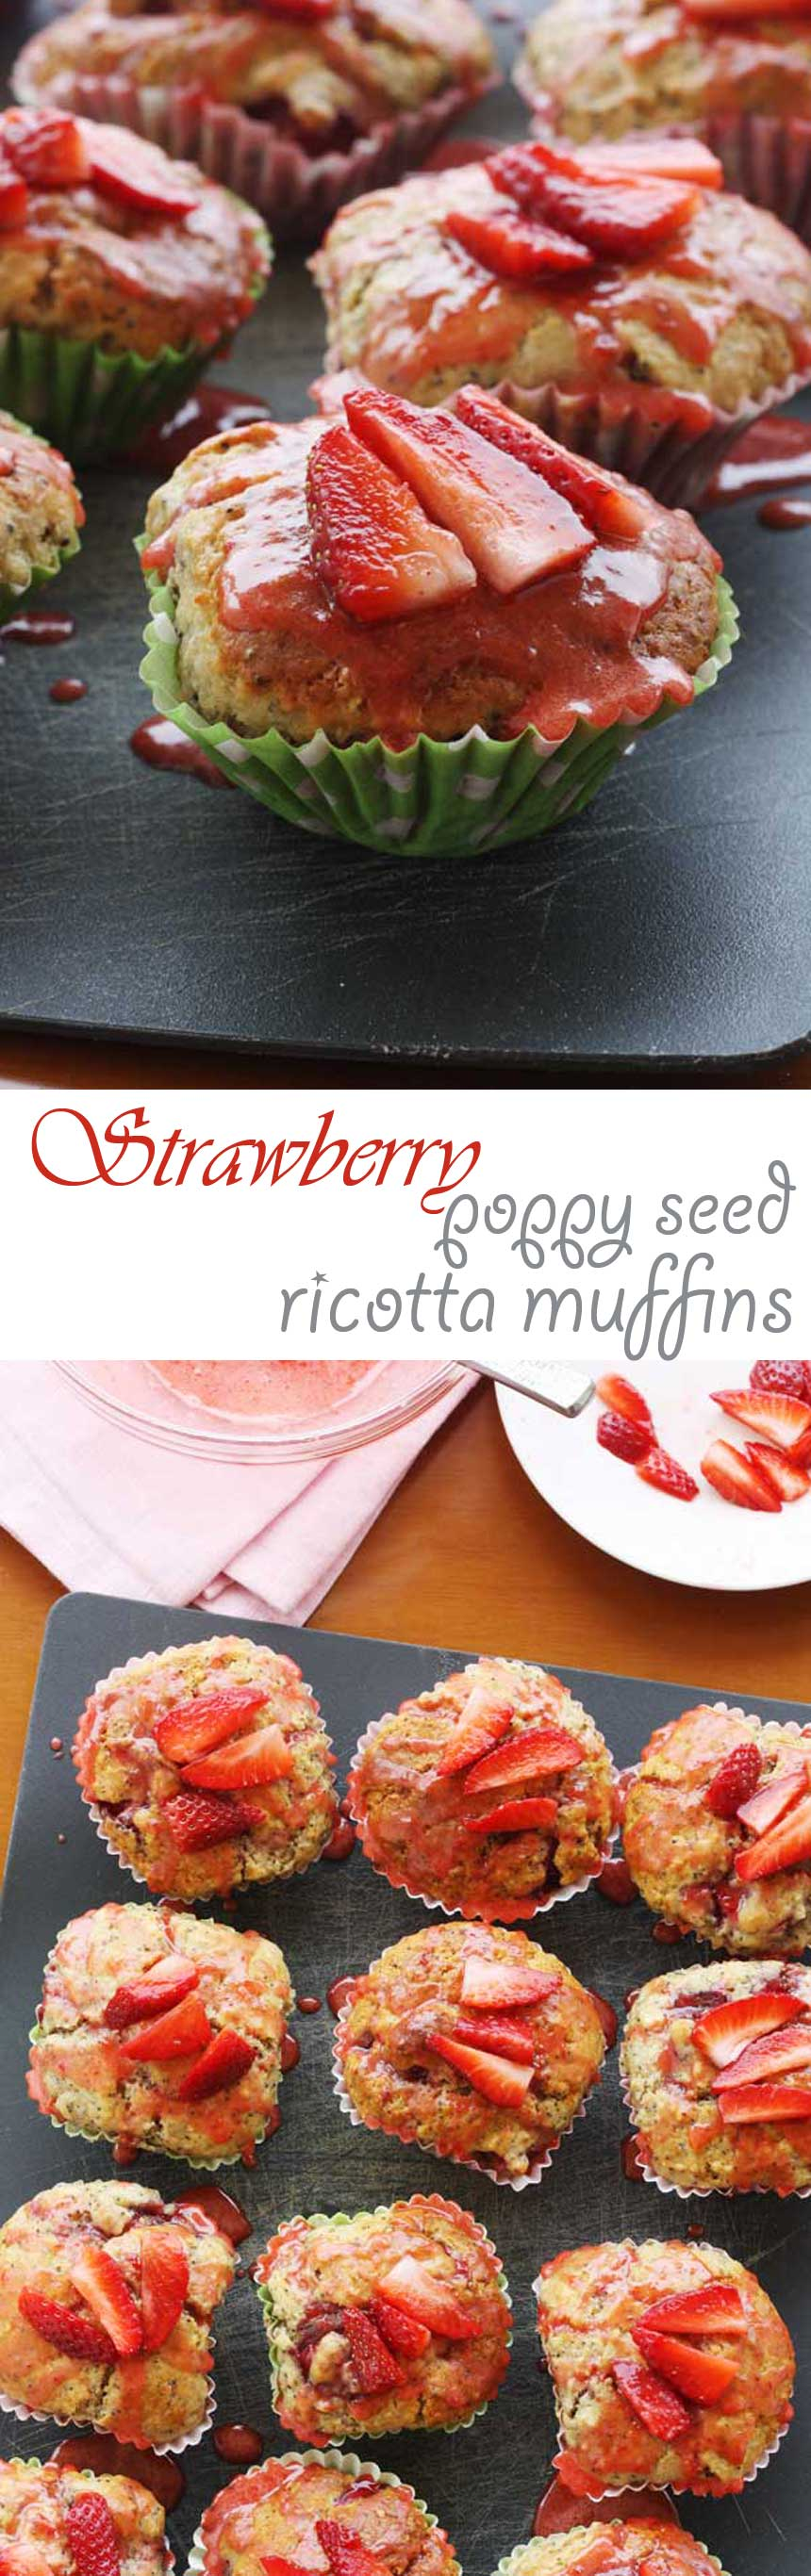 Strawberry poppy seed ricotta muffins - so delicious!